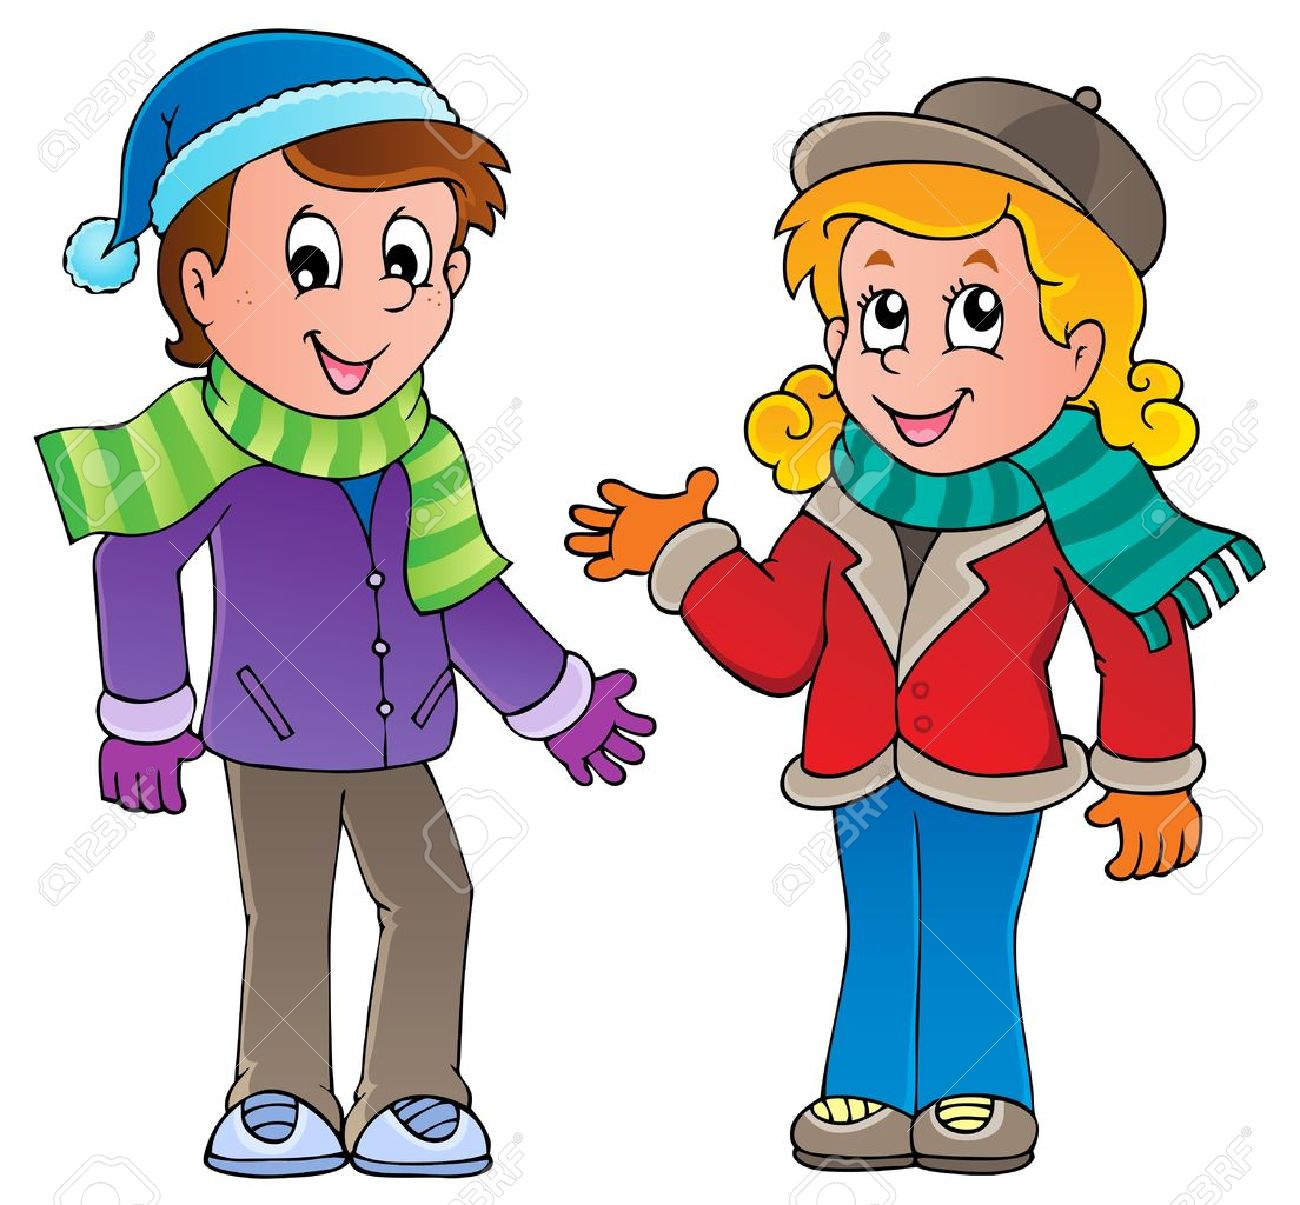 Cartoon Kids Theme Image 1 Royalty Free Cliparts, Vectors, And.